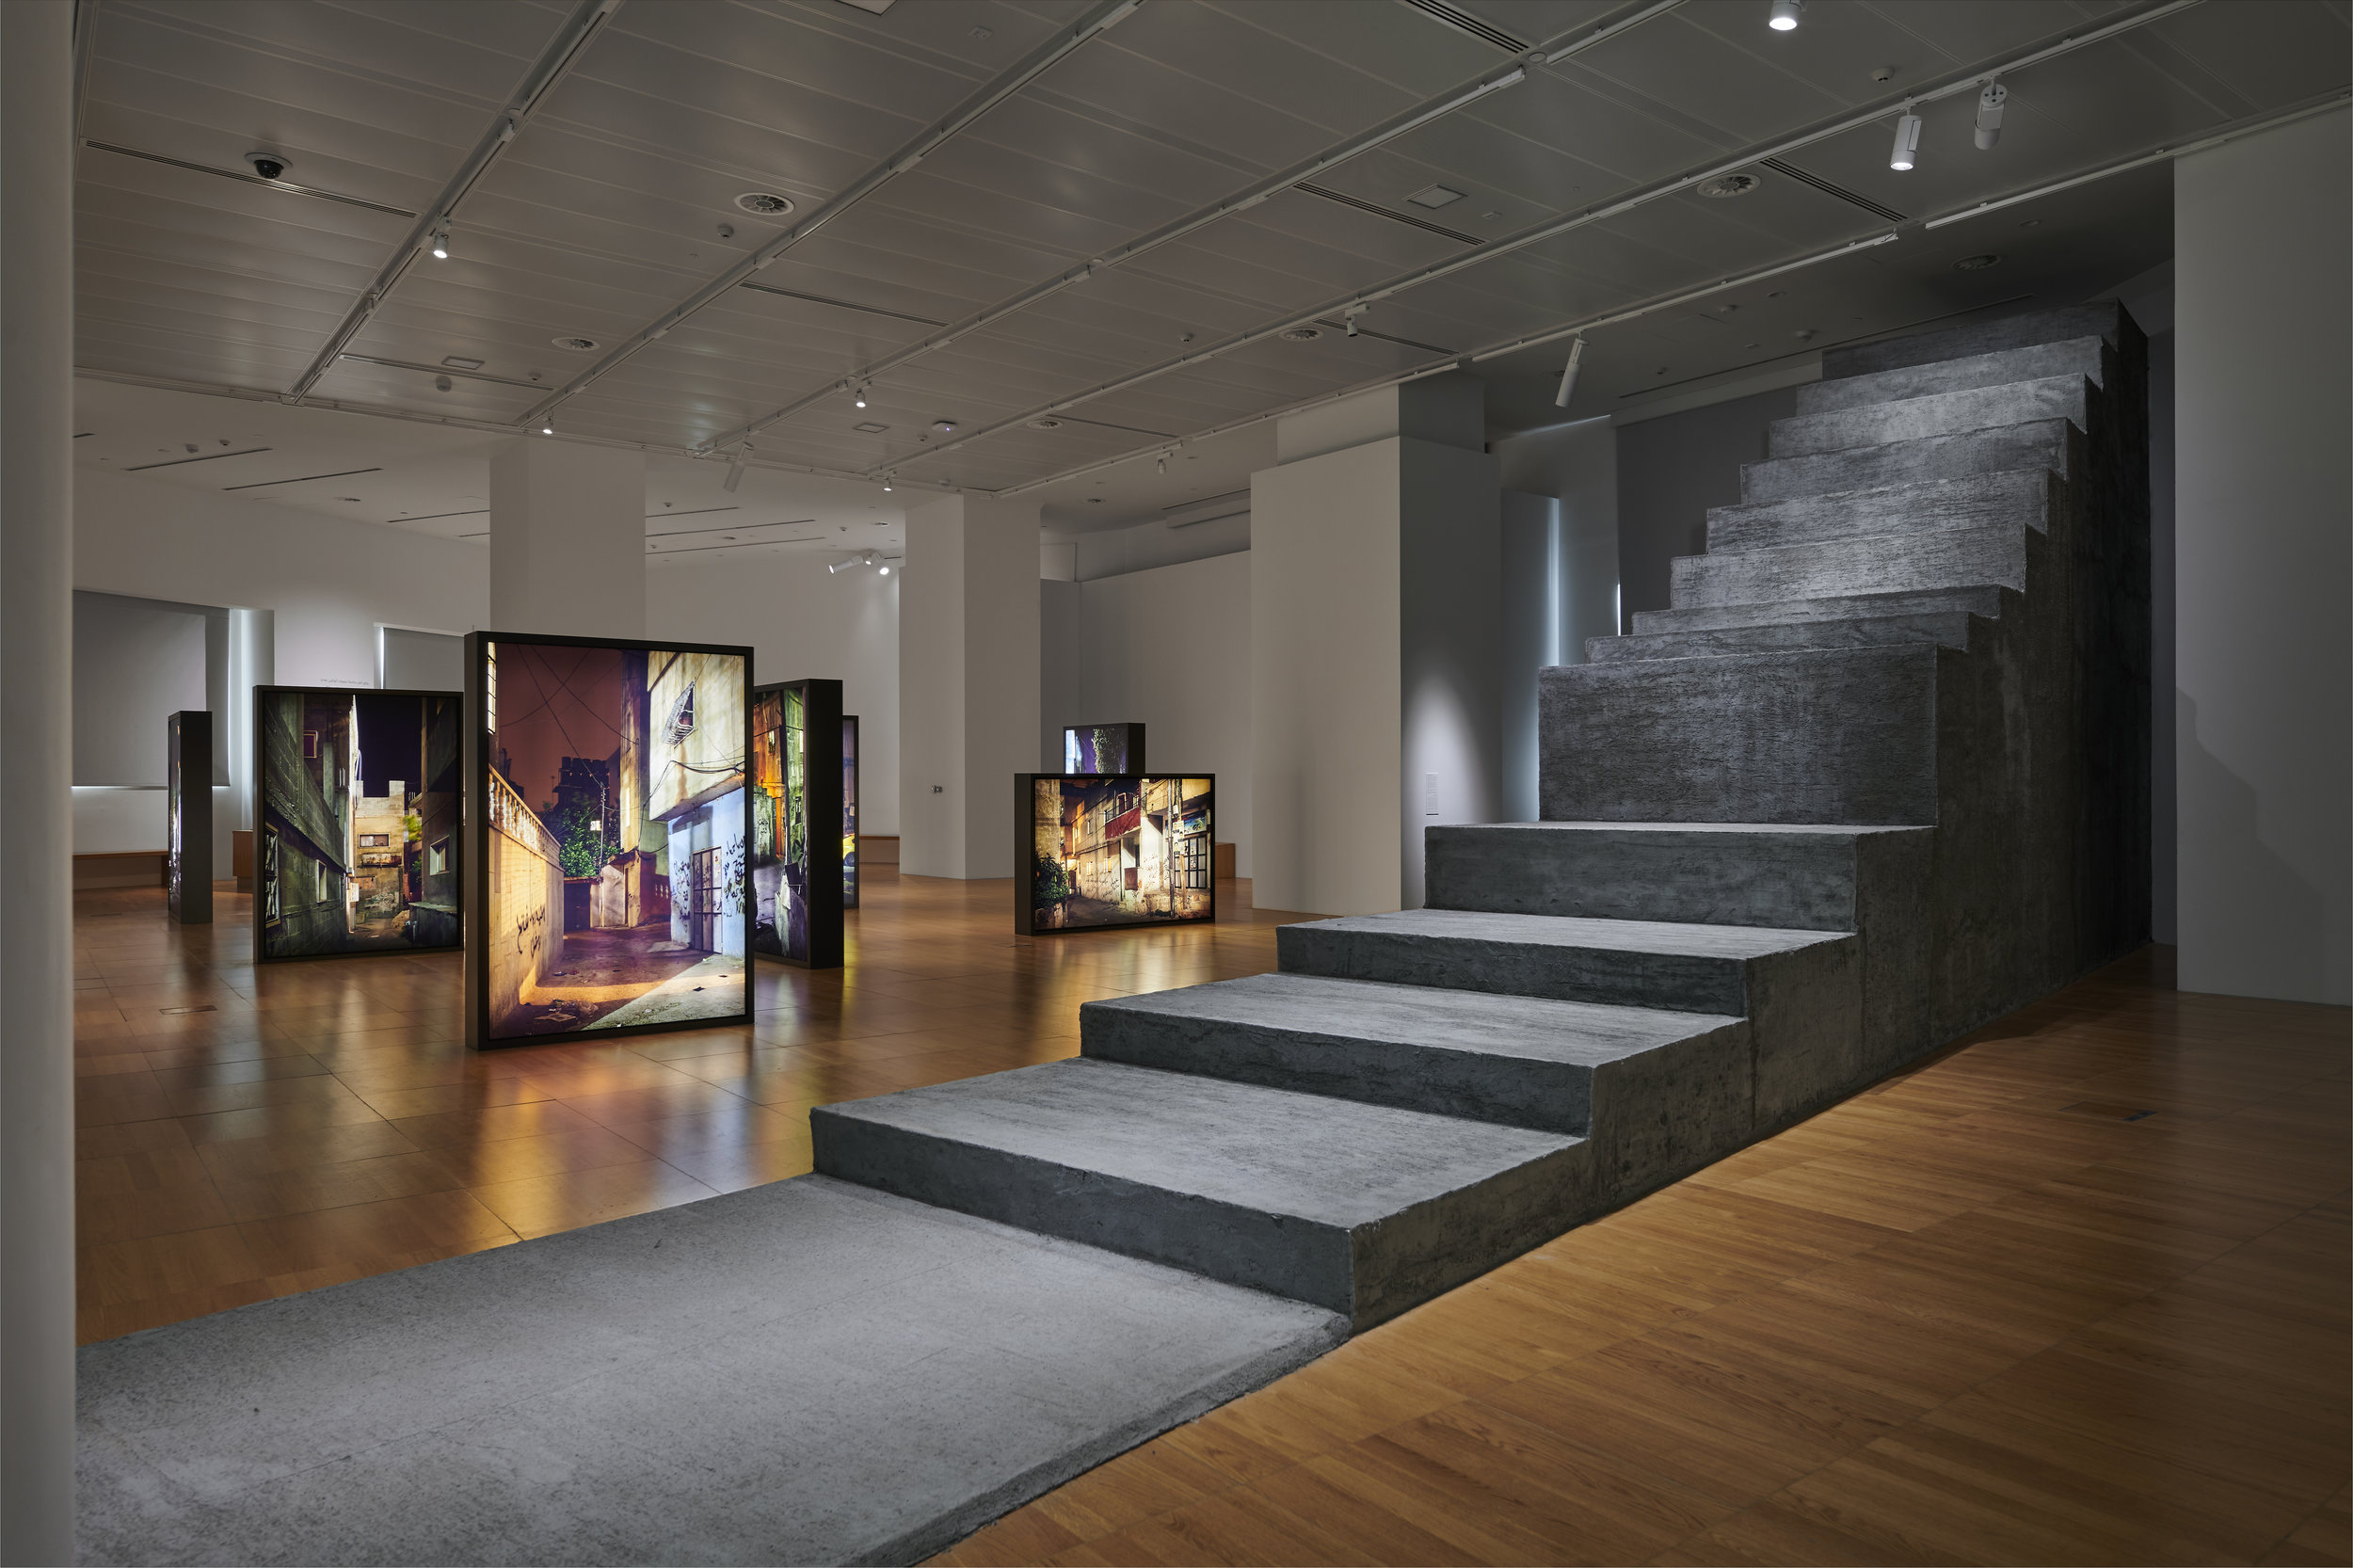 Sandi Hilal and Alessandro Petti. Common Assembly (front) and  Refugee Heritage (back),2018. Concrete structure, photos and light boxes, variable dimensions. Courtesy of the Artists and NYU Abu Dhabi Art Gallery. Image by John Varghese